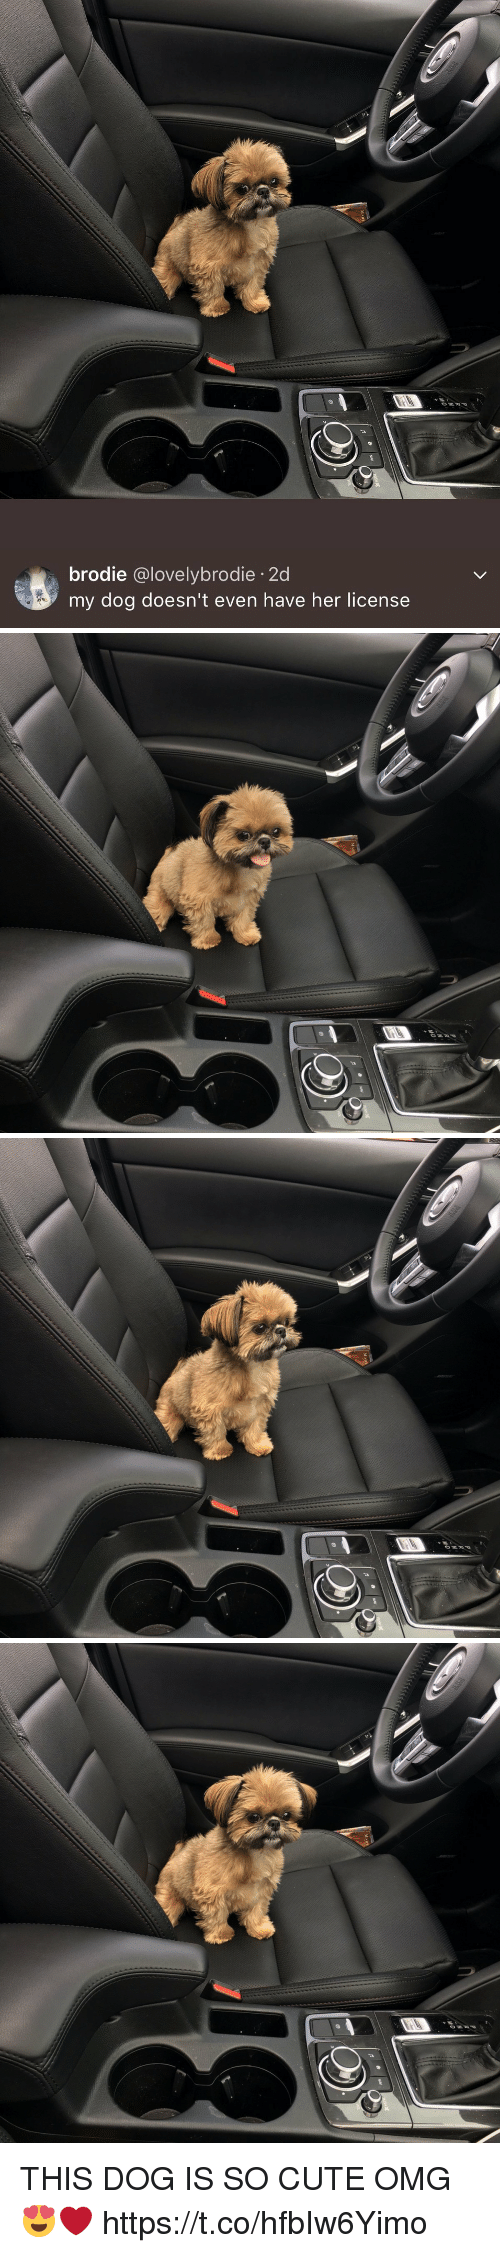 Cute, Omg, and Girl Memes: brodie  @lovely brodie 2d  my dog doesn't even have her license   MD   M-D THIS DOG IS SO CUTE OMG 😍❤️ https://t.co/hfbIw6Yimo